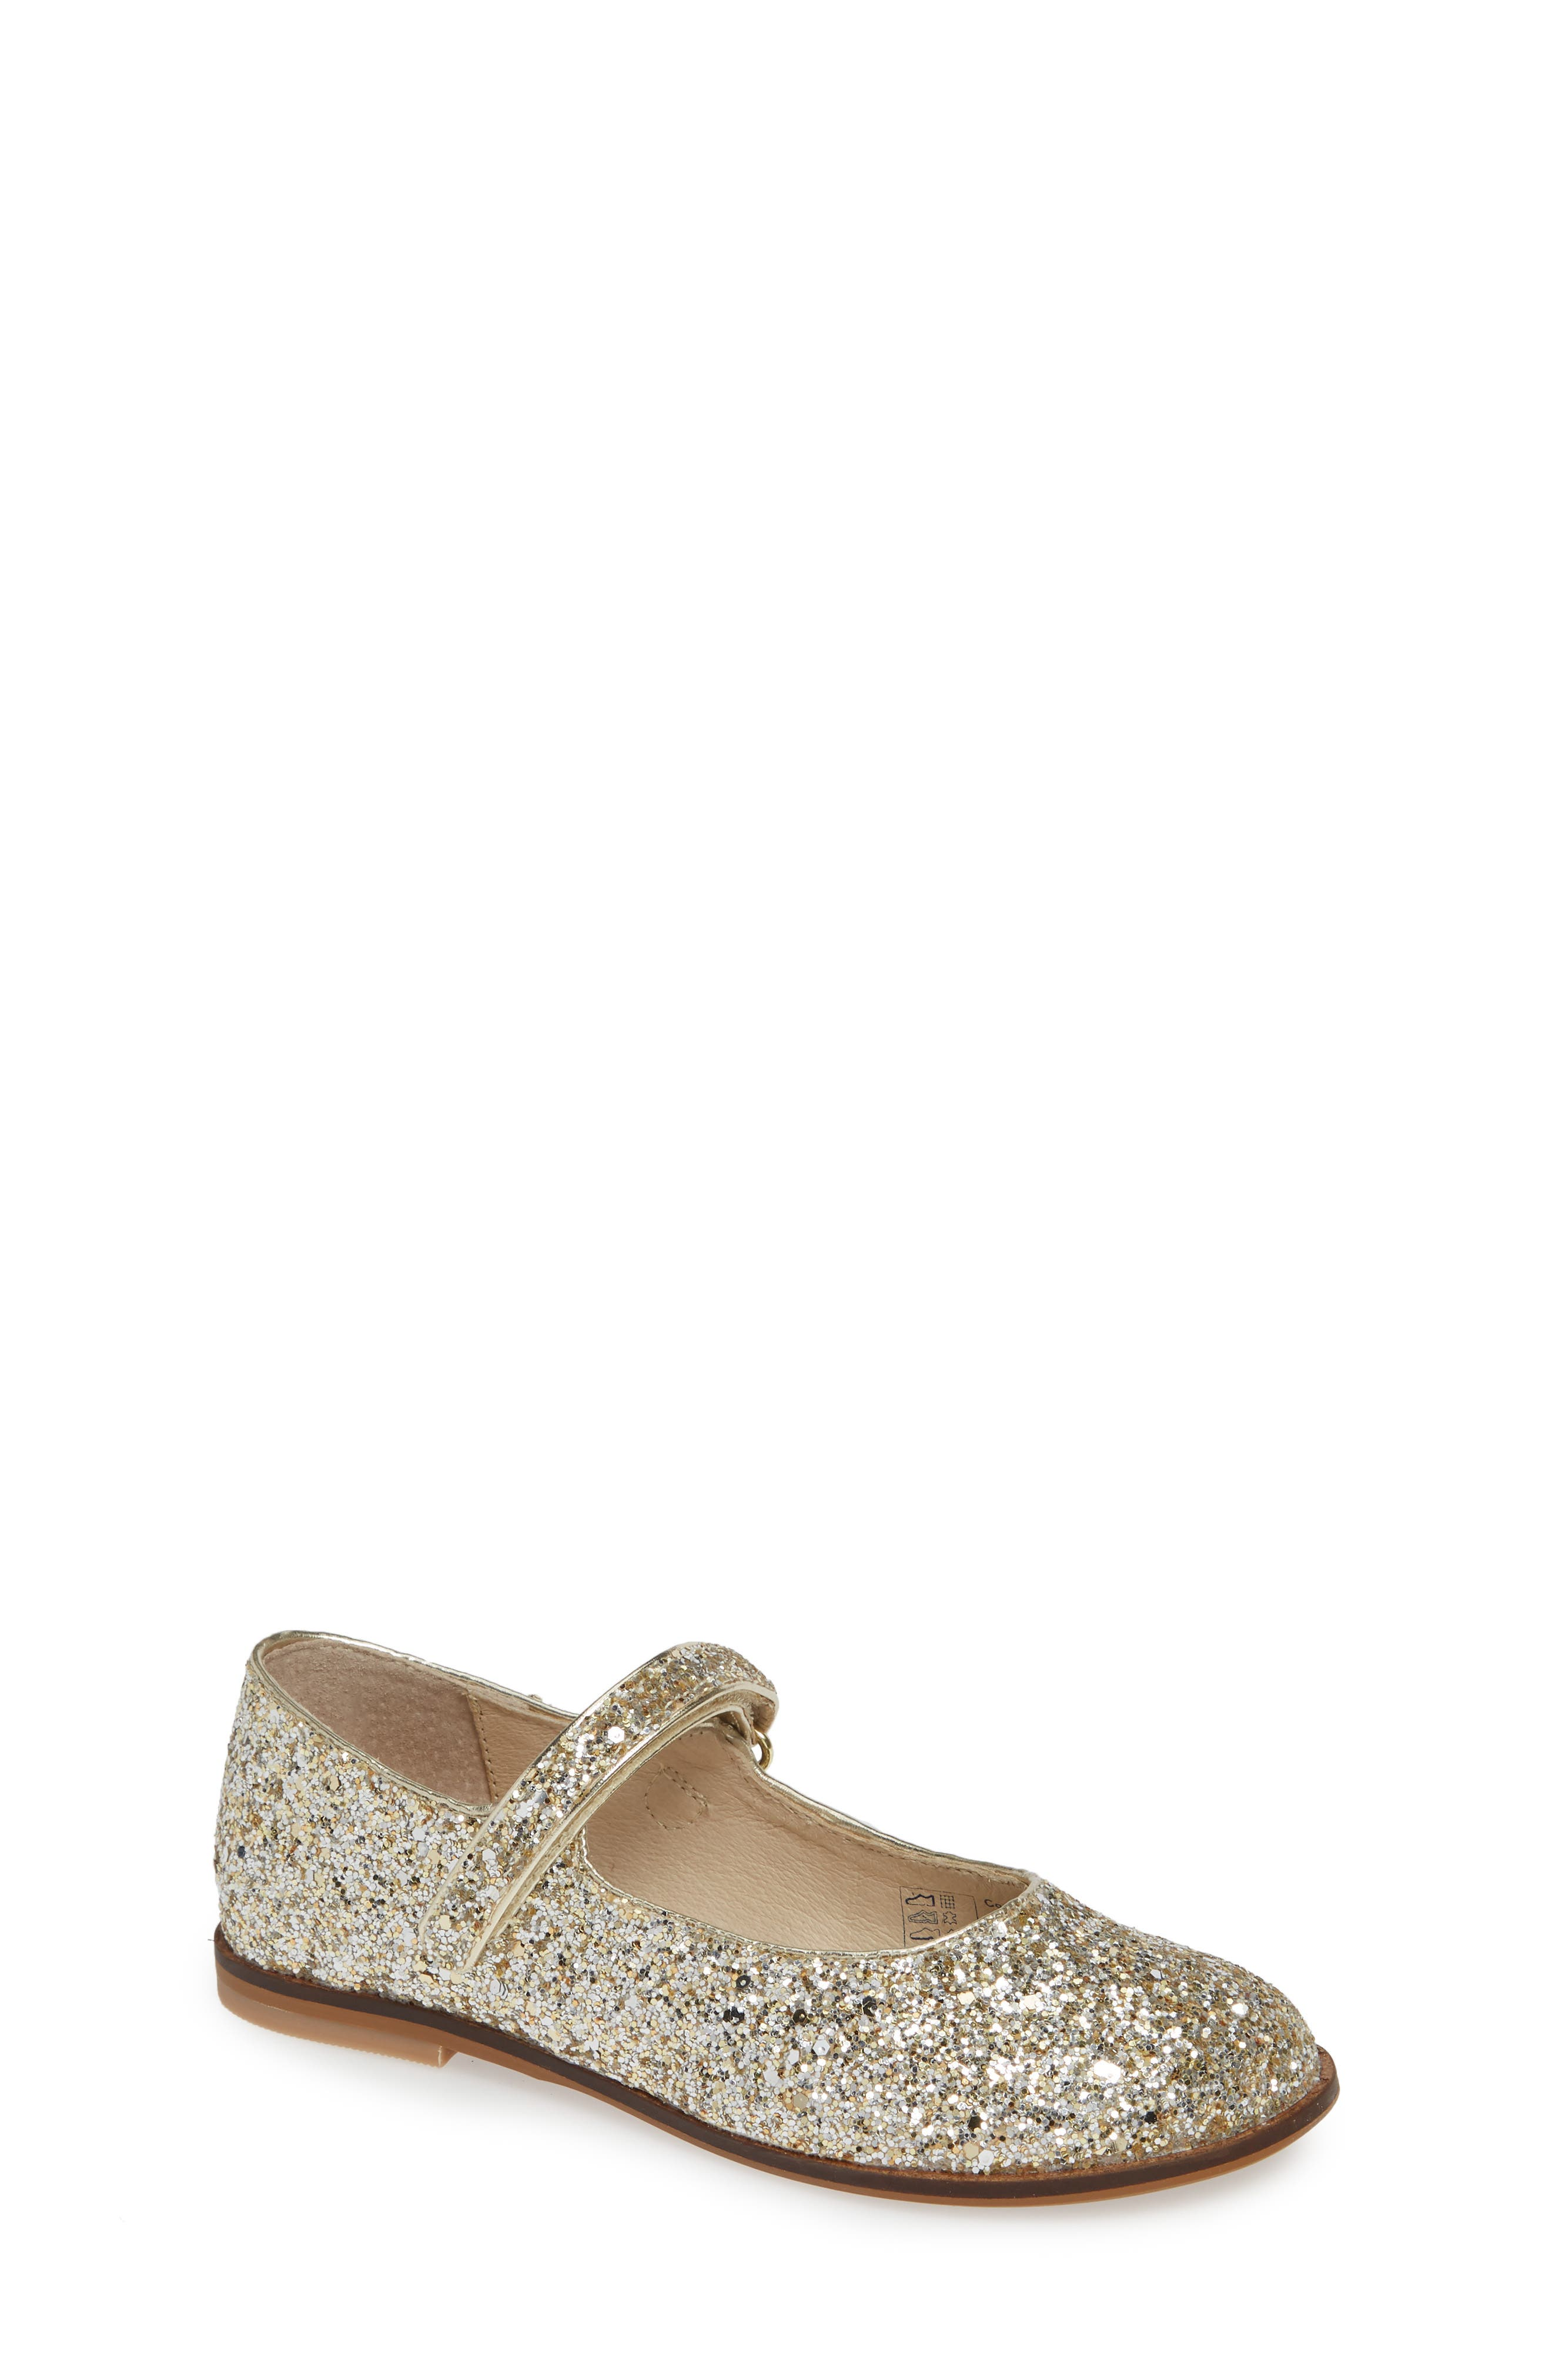 MINI BODEN 'Fun' Mary Jane, Main, color, SILVER/ GOLD GLITTER